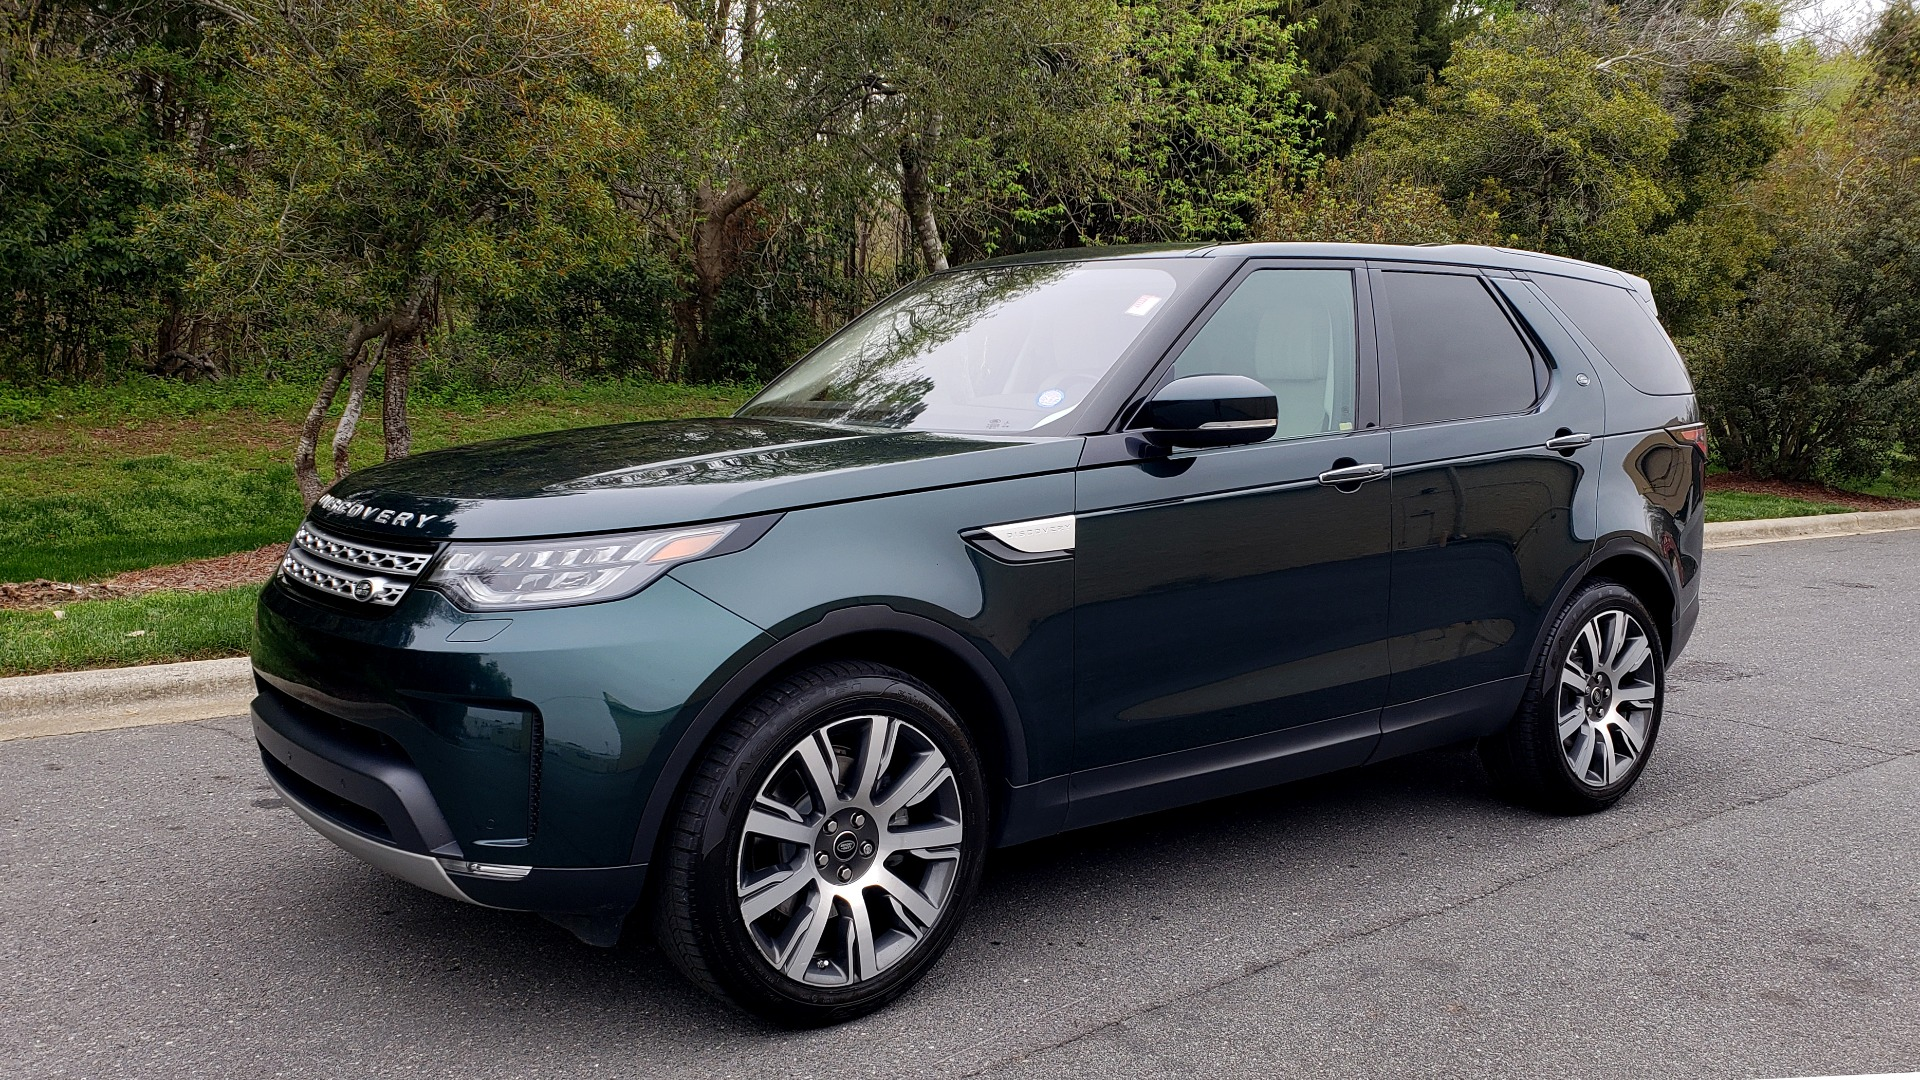 Used 2017 Land Rover DISCOVERY HSE LUXURY / 4WD / NAV / VISION ASST / DRIVE PKG / MERIDIAN for sale Sold at Formula Imports in Charlotte NC 28227 2